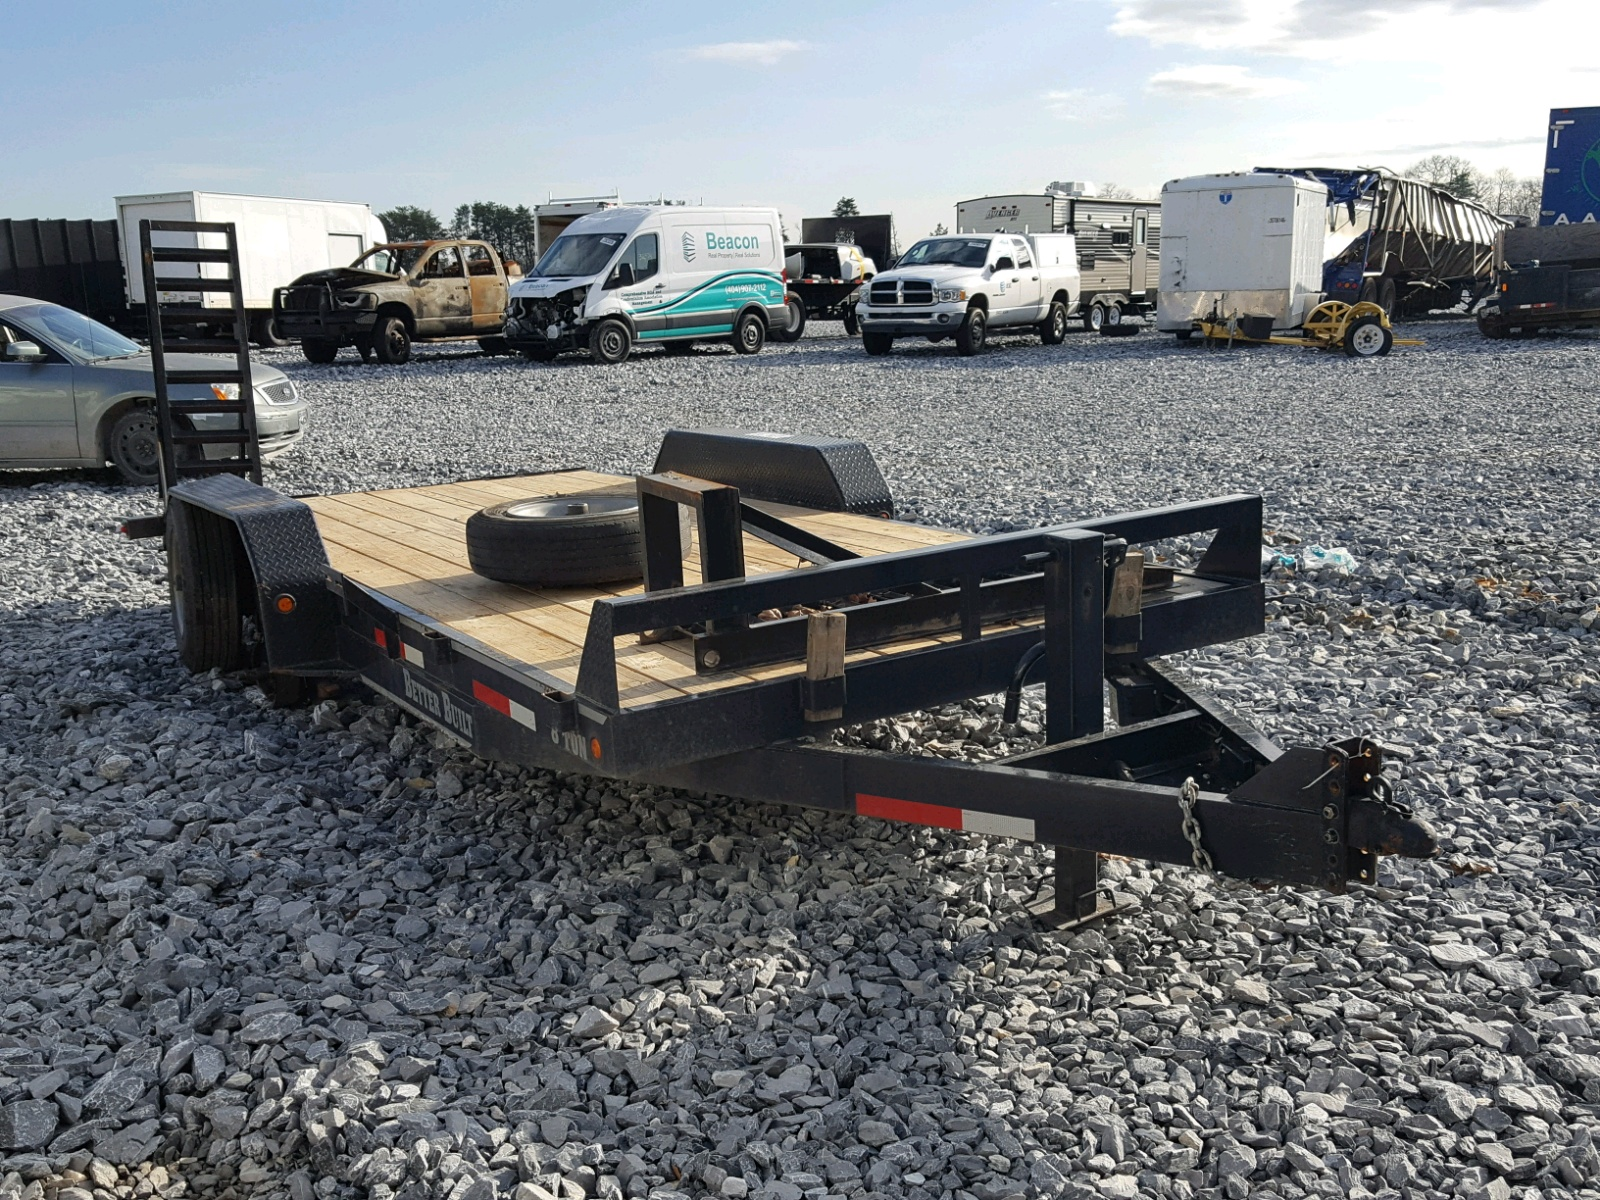 Salvaged Trailers for Auction - AutoBidMaster